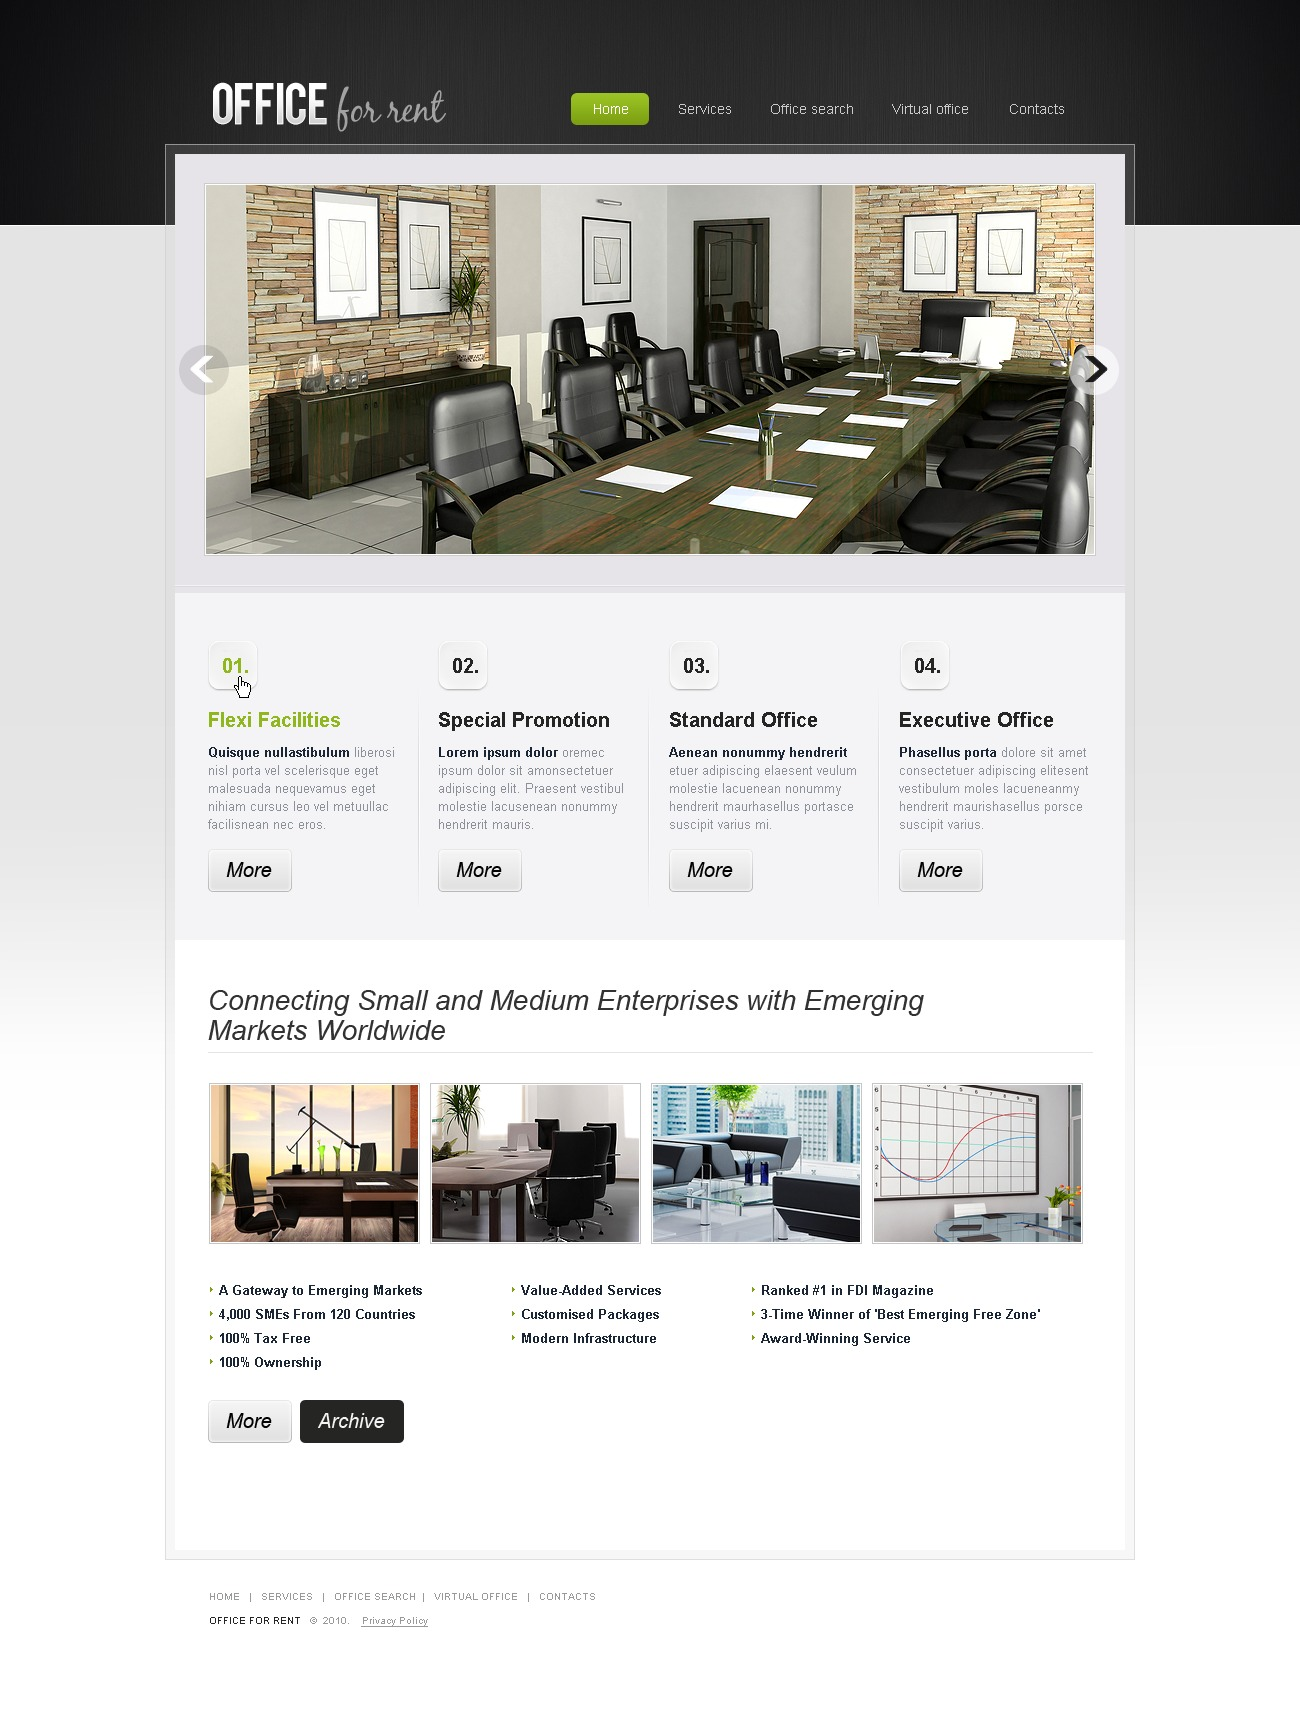 The Office For Rent PSD Design 54212, one of the best PSD templates of its kind (business, wide, jquery), also known as office for rent PSD template, room PSD template, space PSD template, meeting PSD template, business PSD template, virtual PSD template, serviced PSD template, conference and related with office for rent, room, space, meeting, business, virtual, serviced, conference, etc.